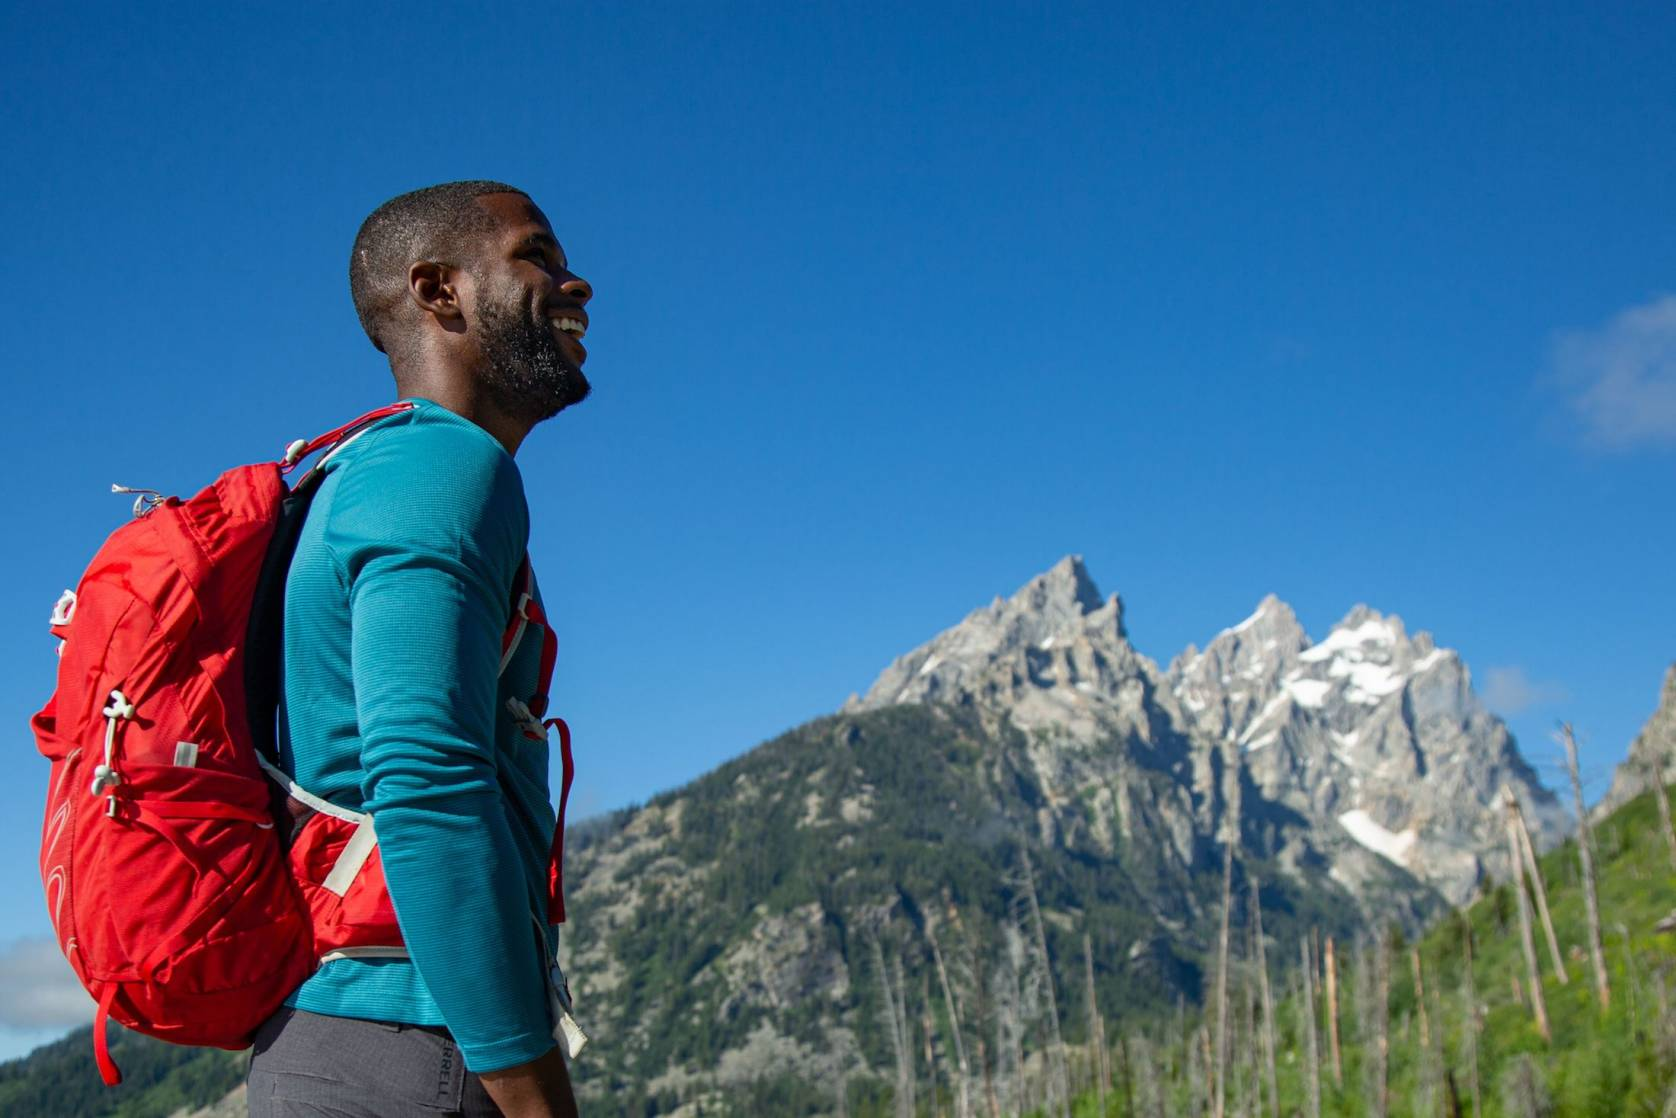 African American hiker Tyrhee Moore looking up towards mountains